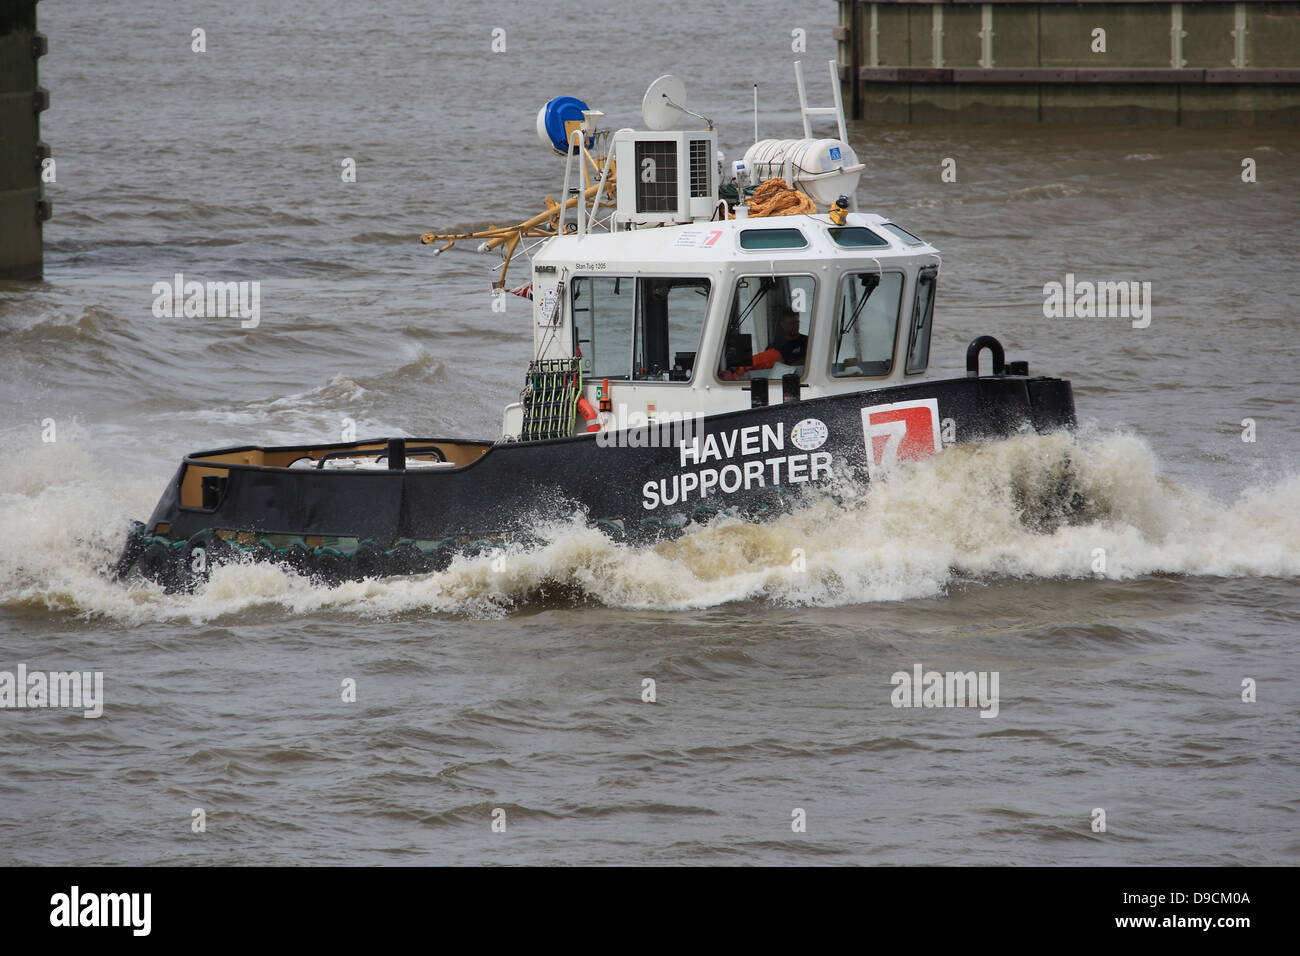 The Haven Supporter is on long term charter from Red 7 Marine The 'Stan Tug 1205' will be assisting Blackfriars - Stock Image